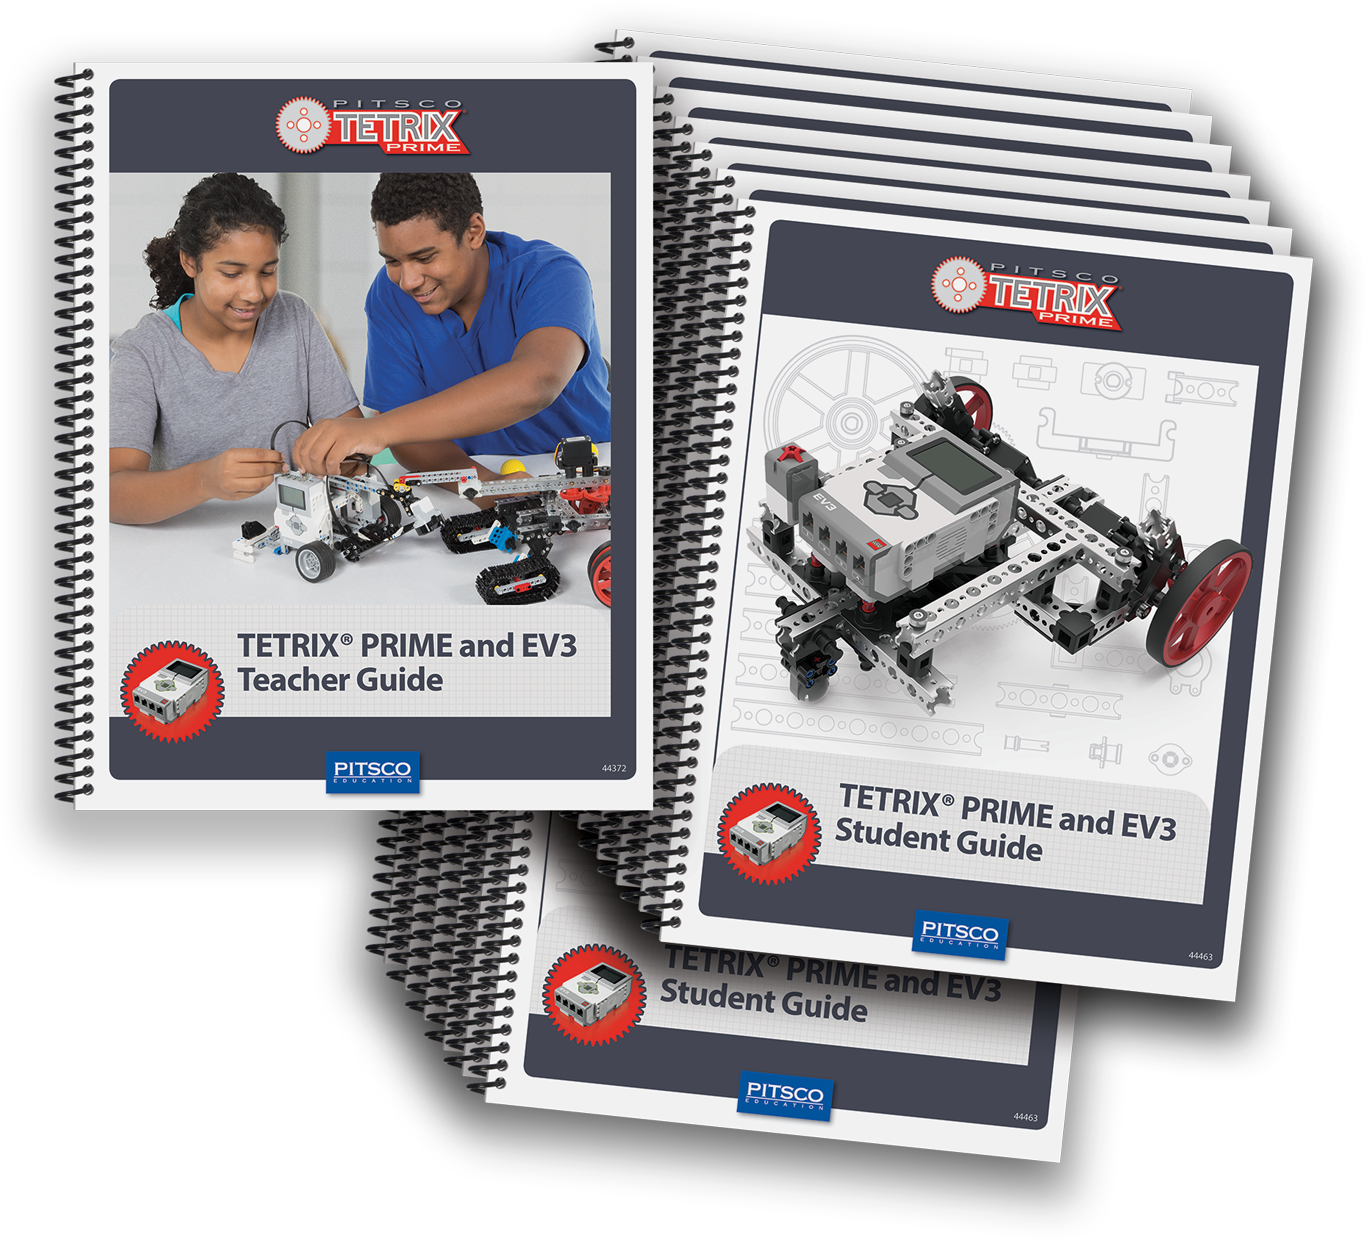 TETRIX-PRIME-and-EV3-Curriculum-Pack-1366-0218